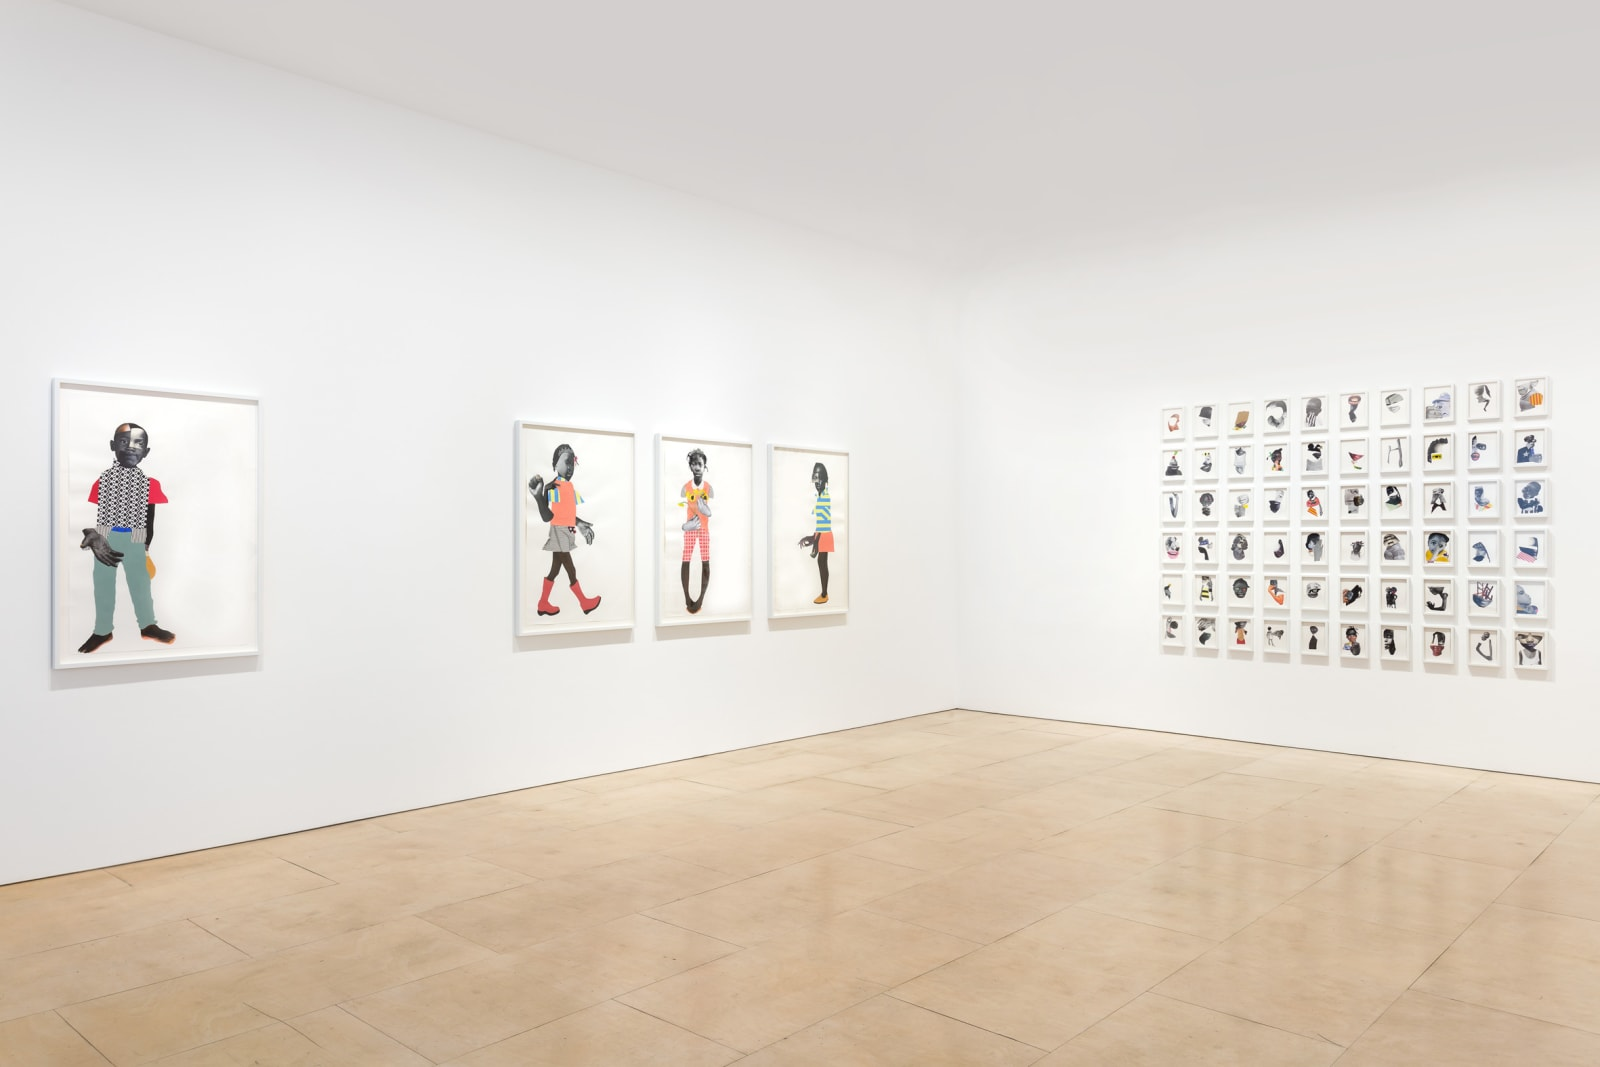 <p>Installation view: 'If they come', Stephen Friedman Gallery, London (2019).</p>